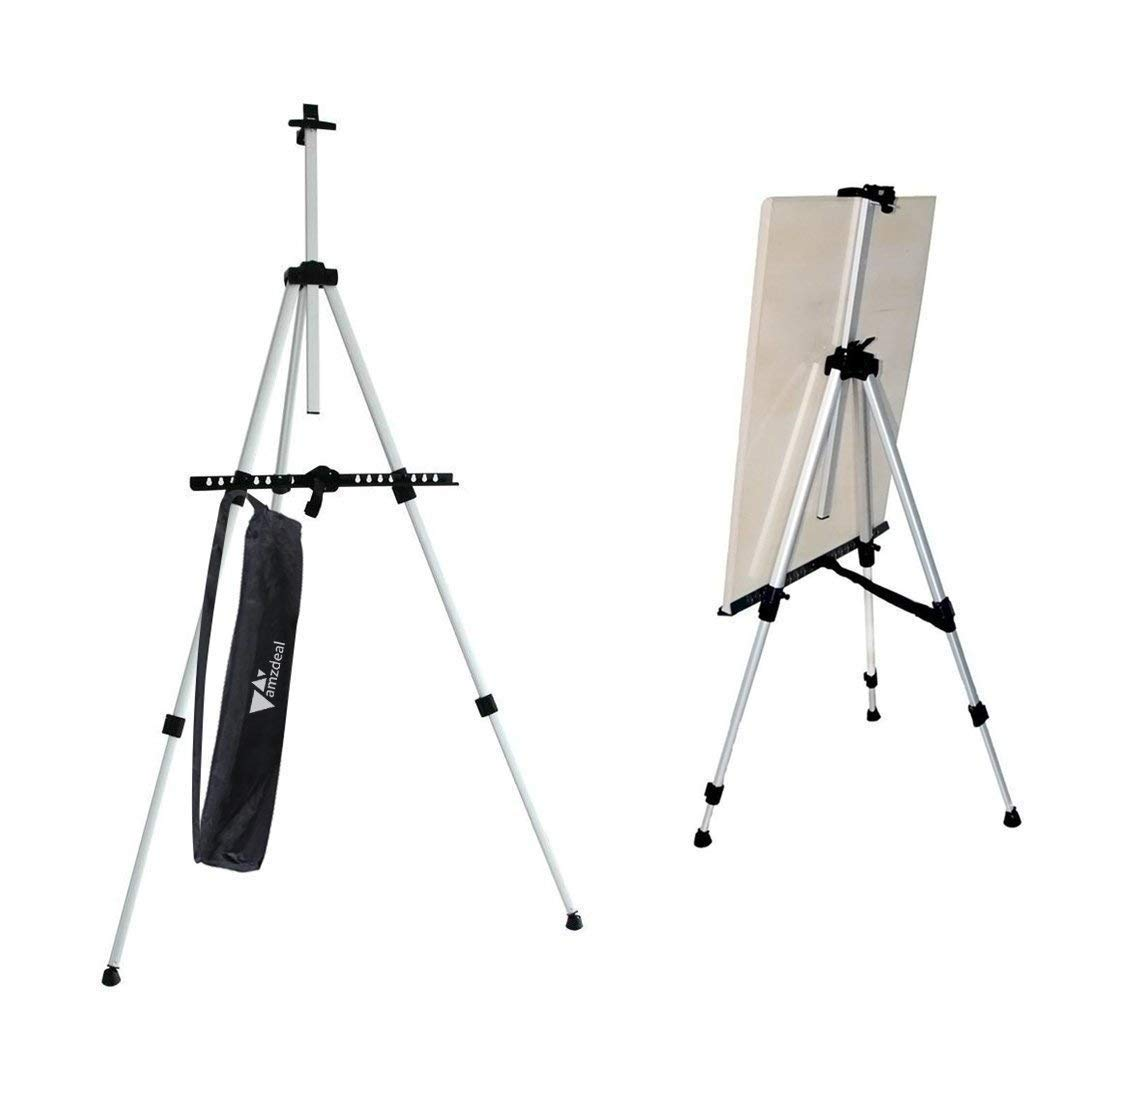 Amzdeal Easel Art Easel Stand Collapsible Aluminum Easel Adjustable Height from 60-162cm with Carry Bag for Outdoor Sketching Painting a1 a2 a3 Canvas Boards Posters Pictures Displaying (Silver)